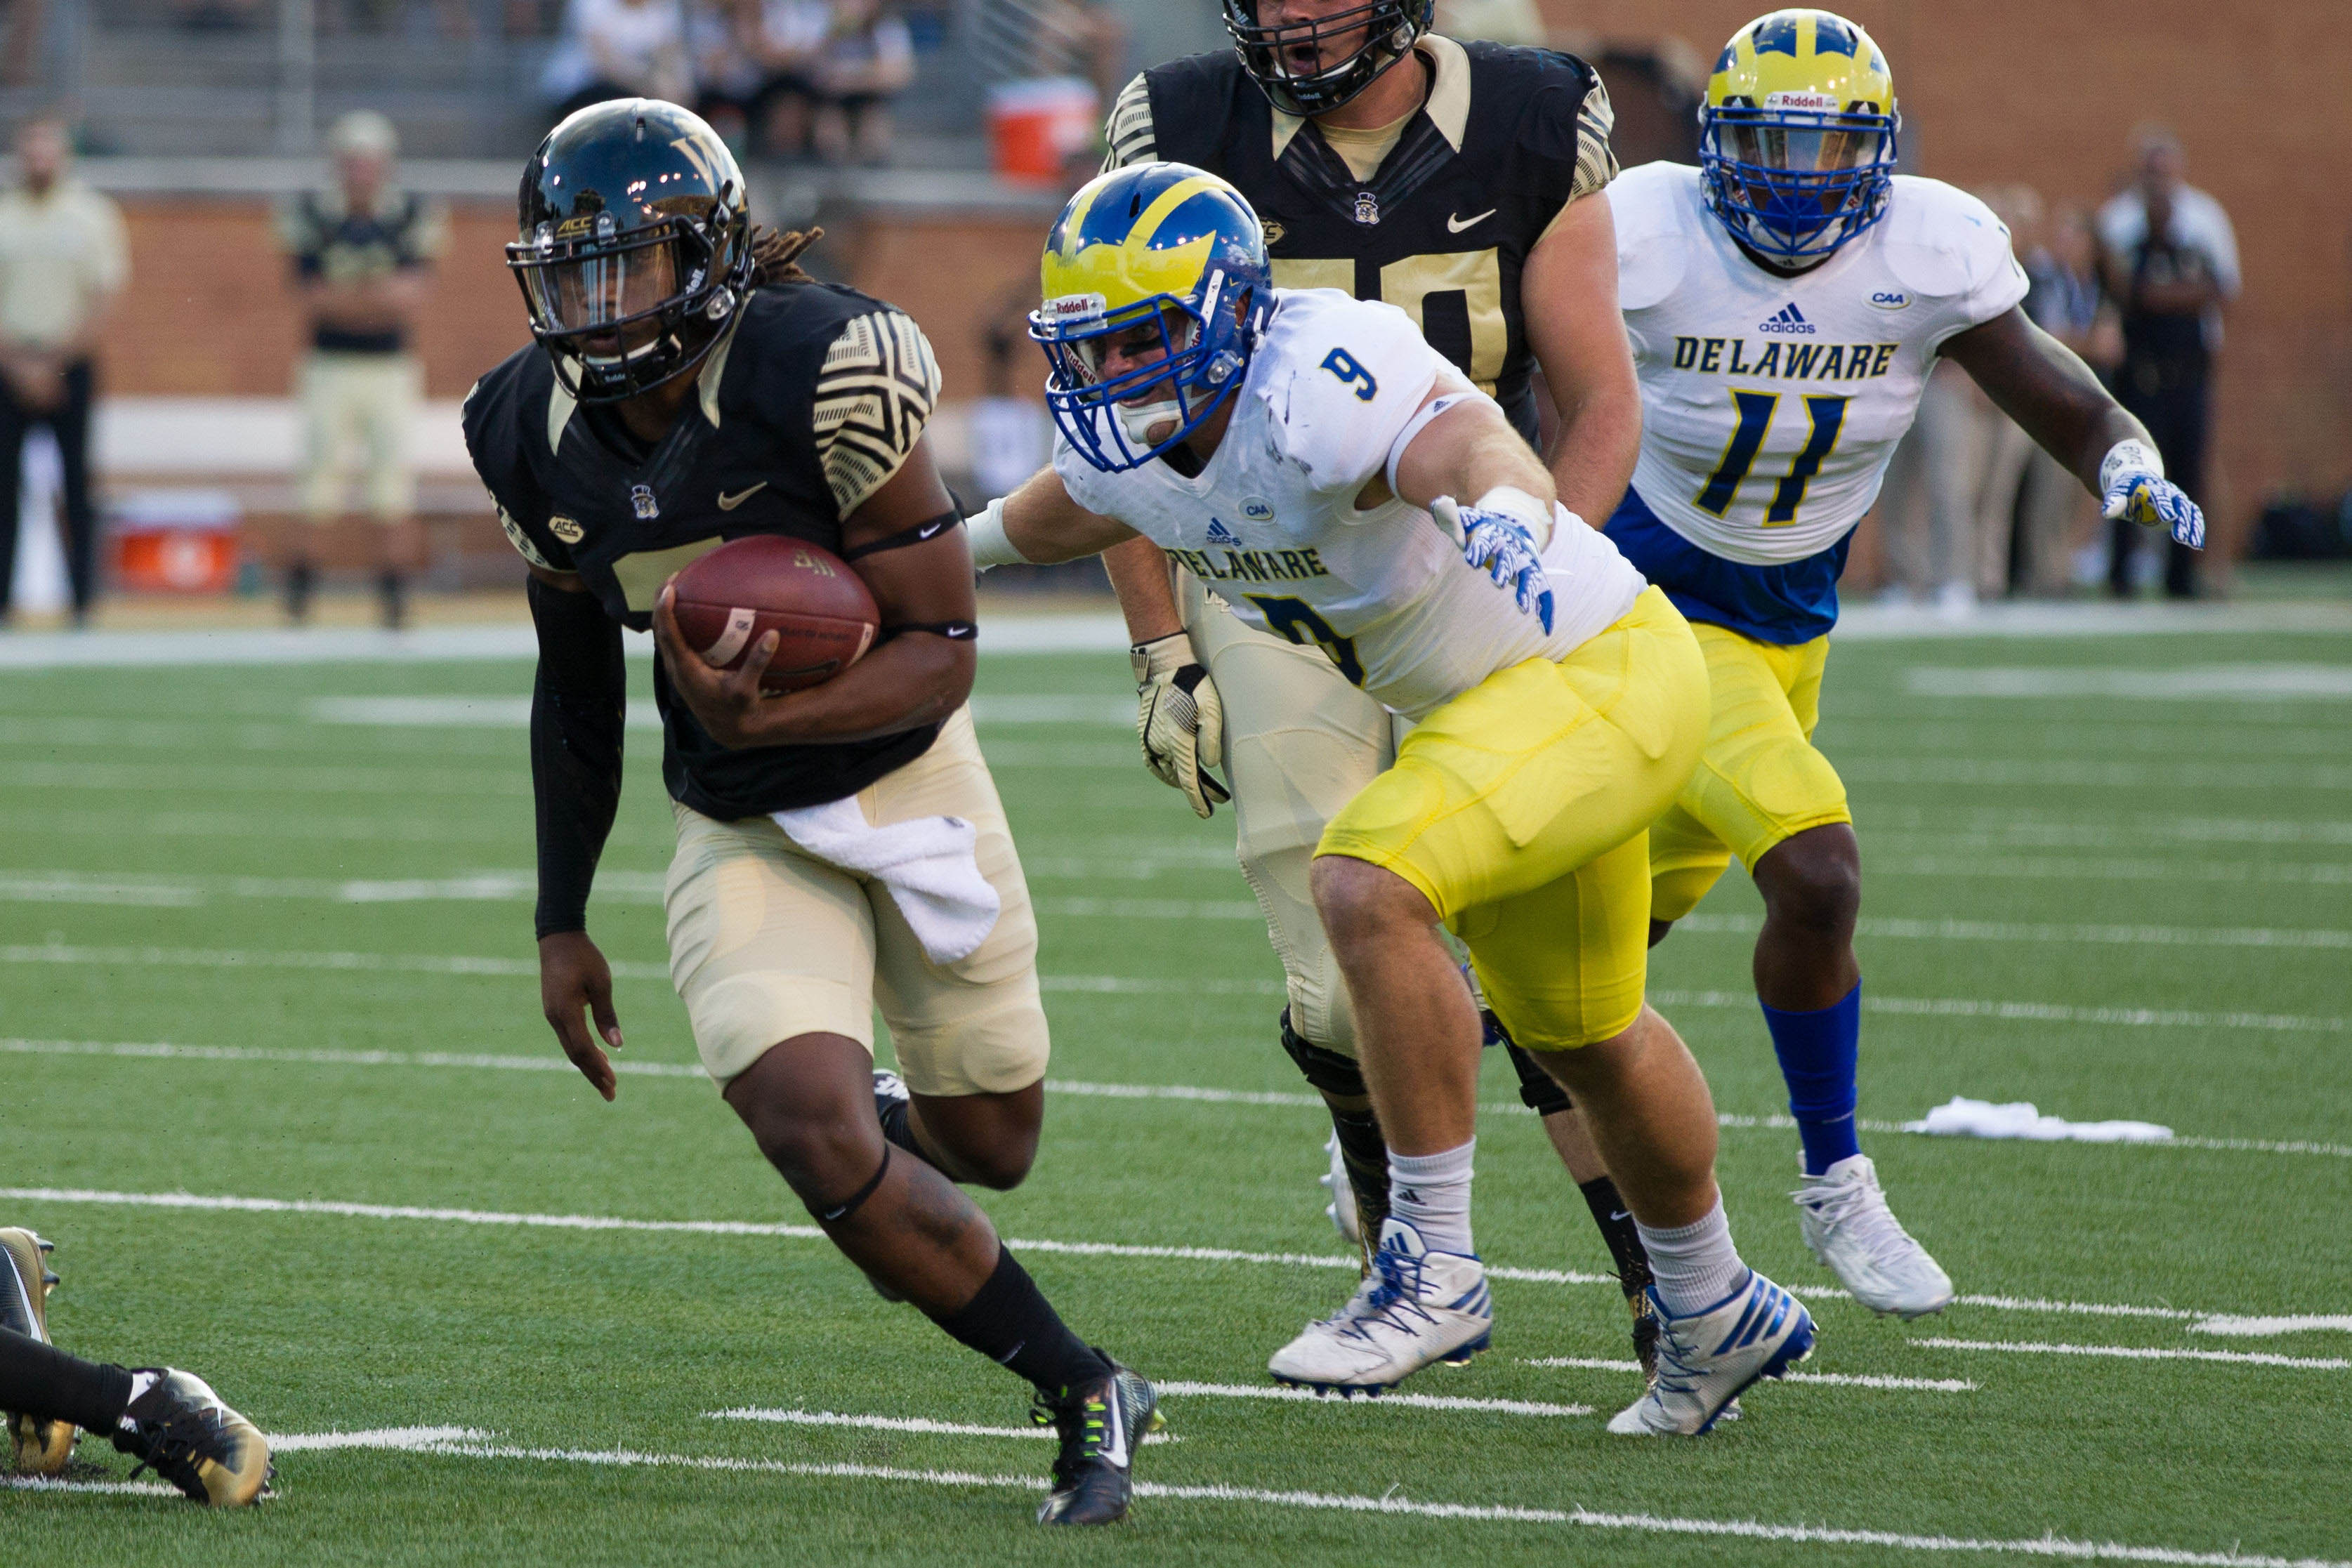 9546617-ncaa-football-delaware-at-wake-forest